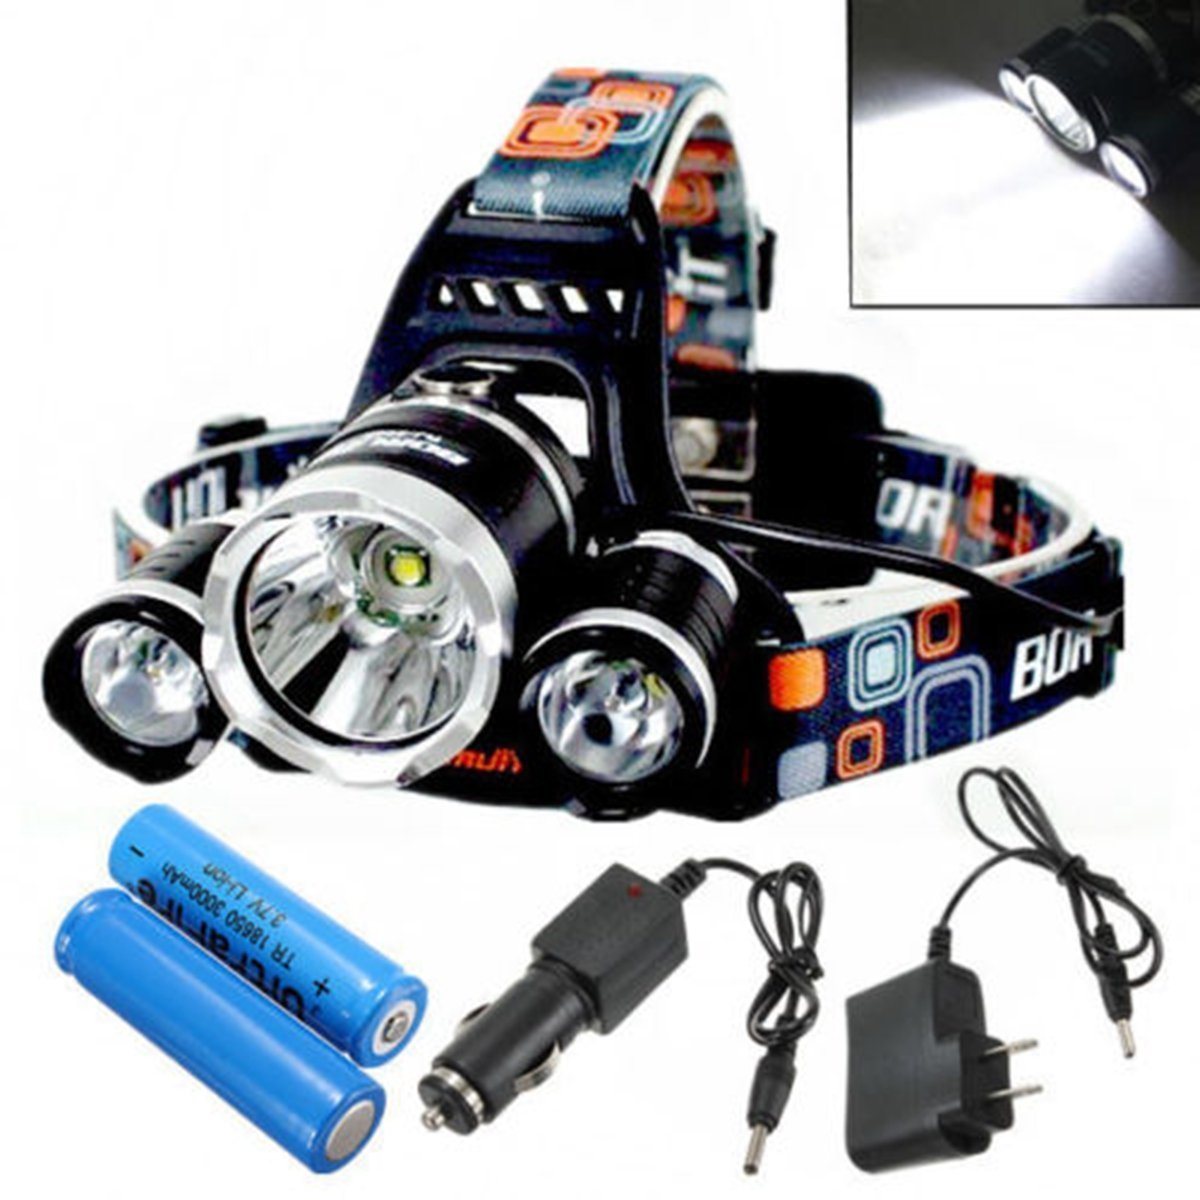 XM-L T6 LED 3T6 Rechargeable Headlamp Headlight Torch / XM-L T6 4 Modes Rechargeable Led Headlight Headlamp Head Lamps Led Headlight Light Plus AC Charger Car Charger 18650 Battery . s: I